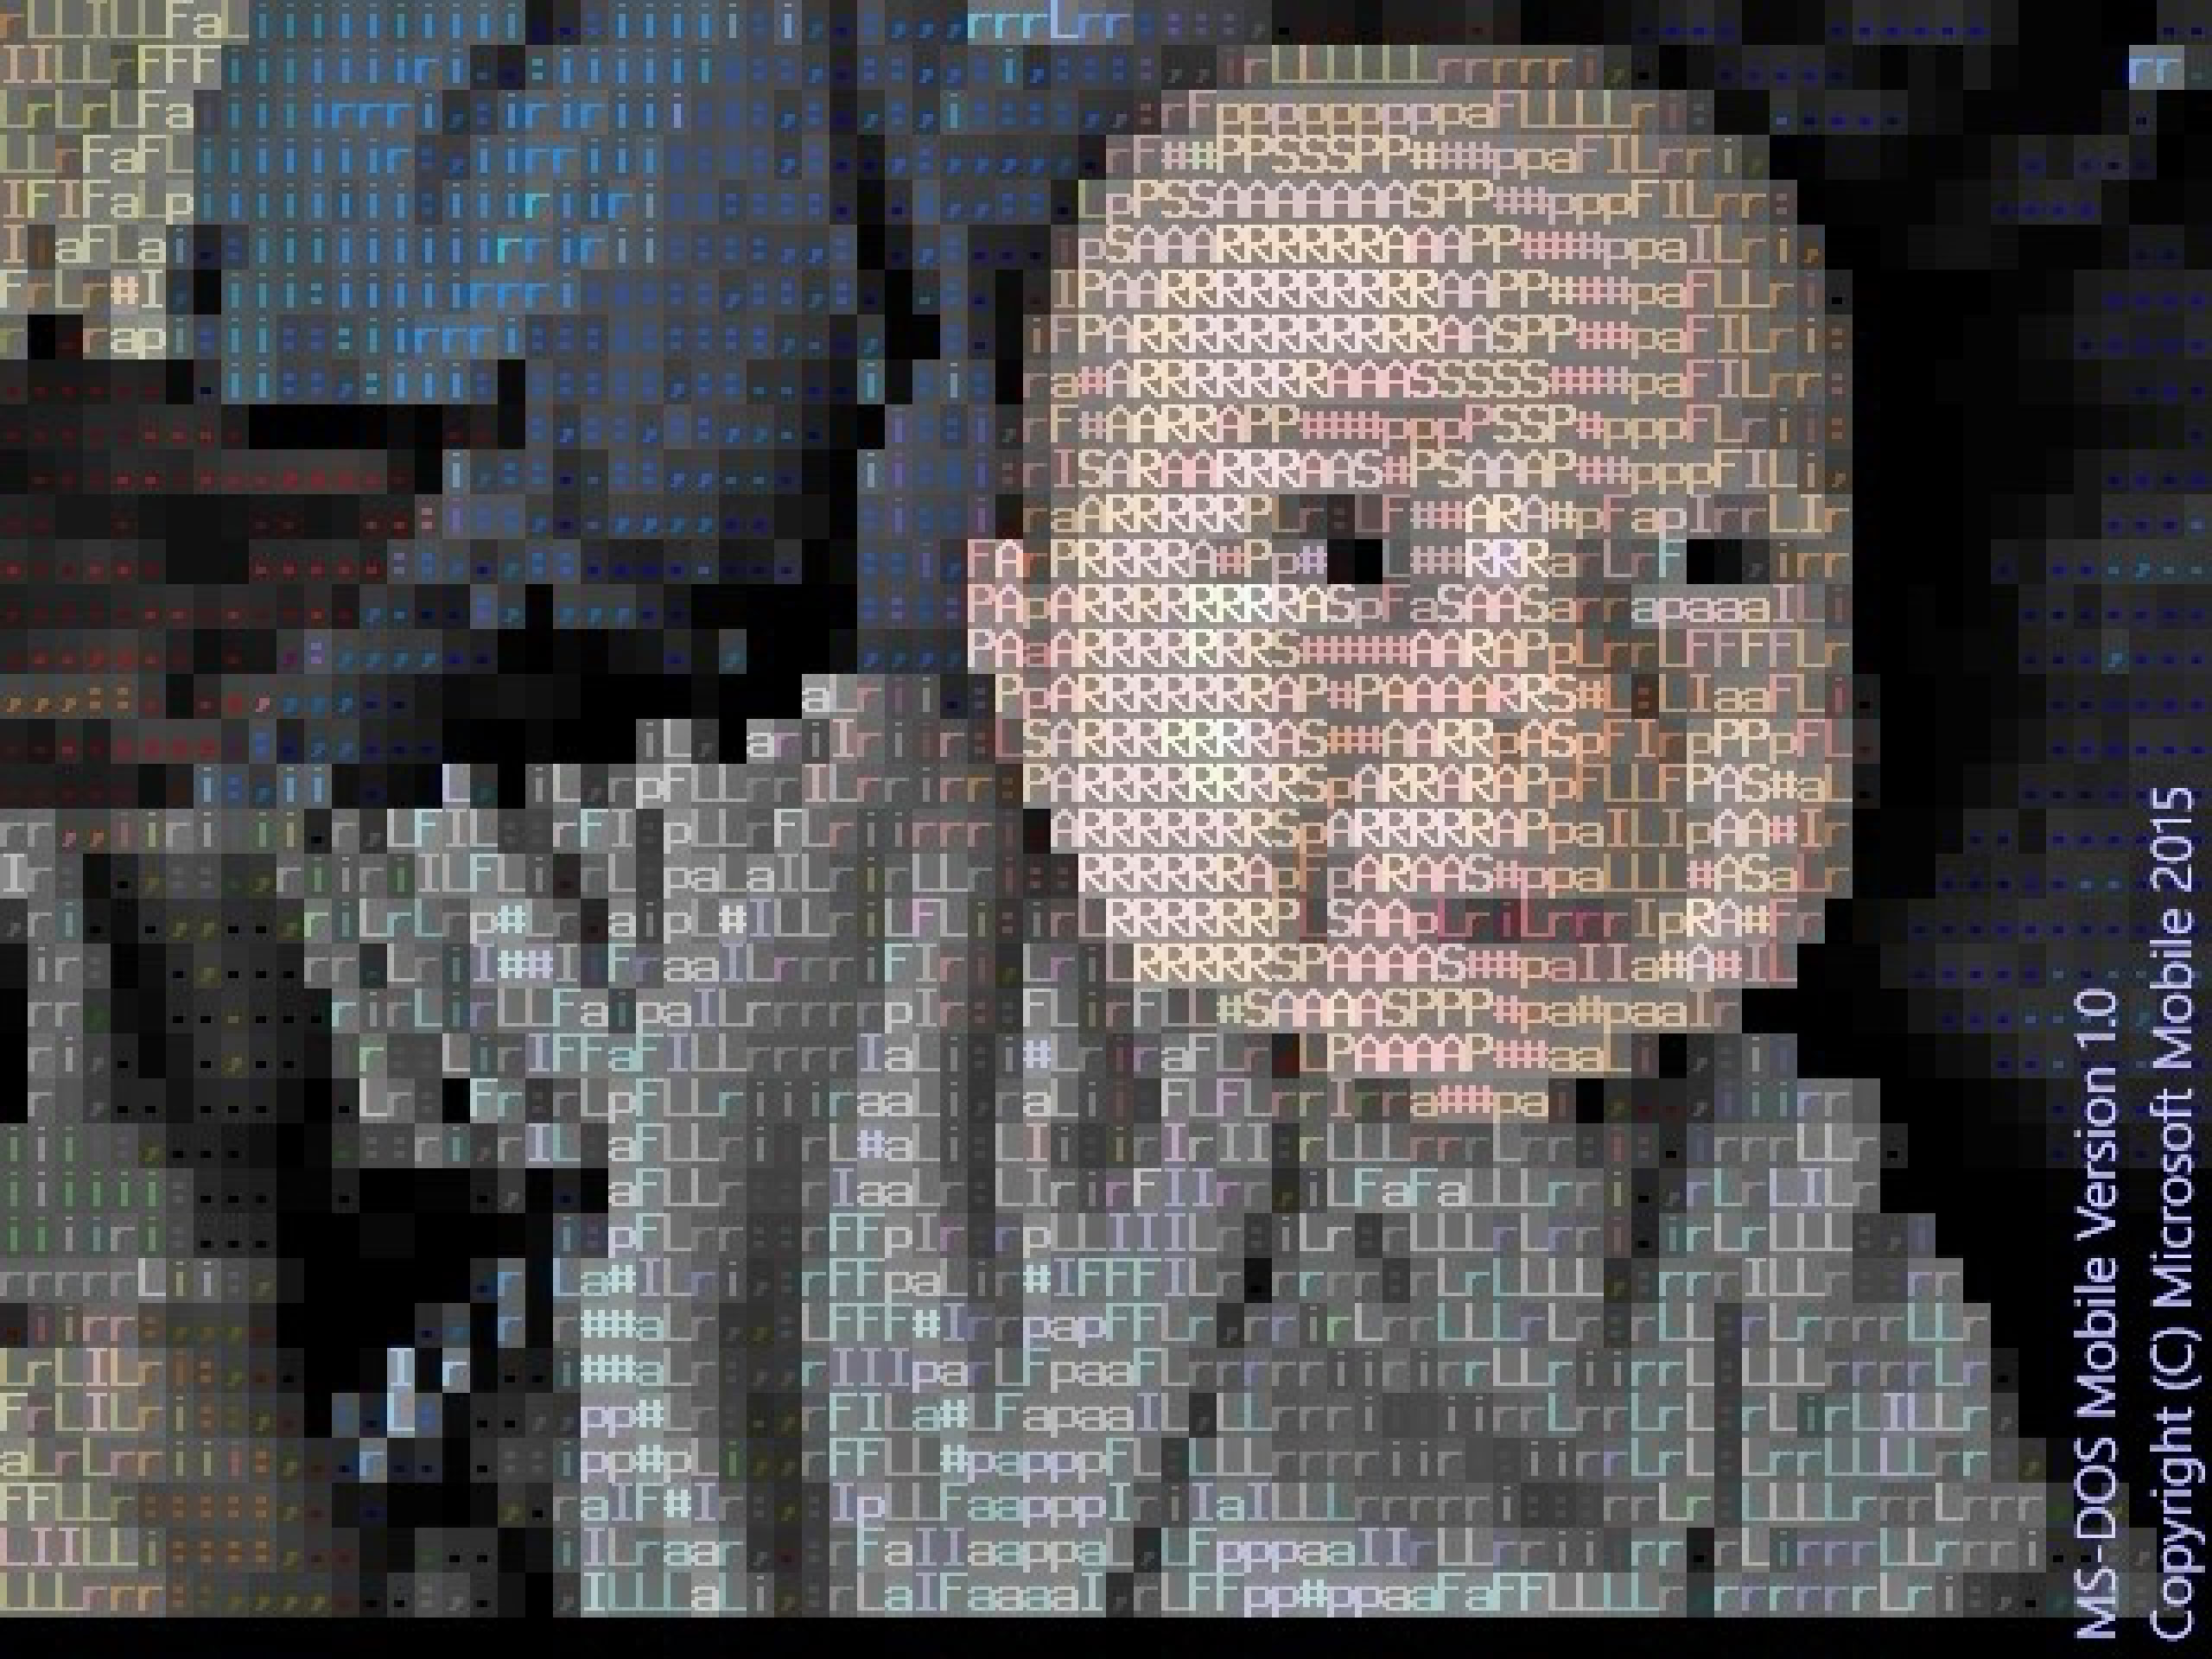 Microsoft's MS-DOS Mobile joke app for April Fools' Day comes with a camera app that takes photos in ASCII-art style.